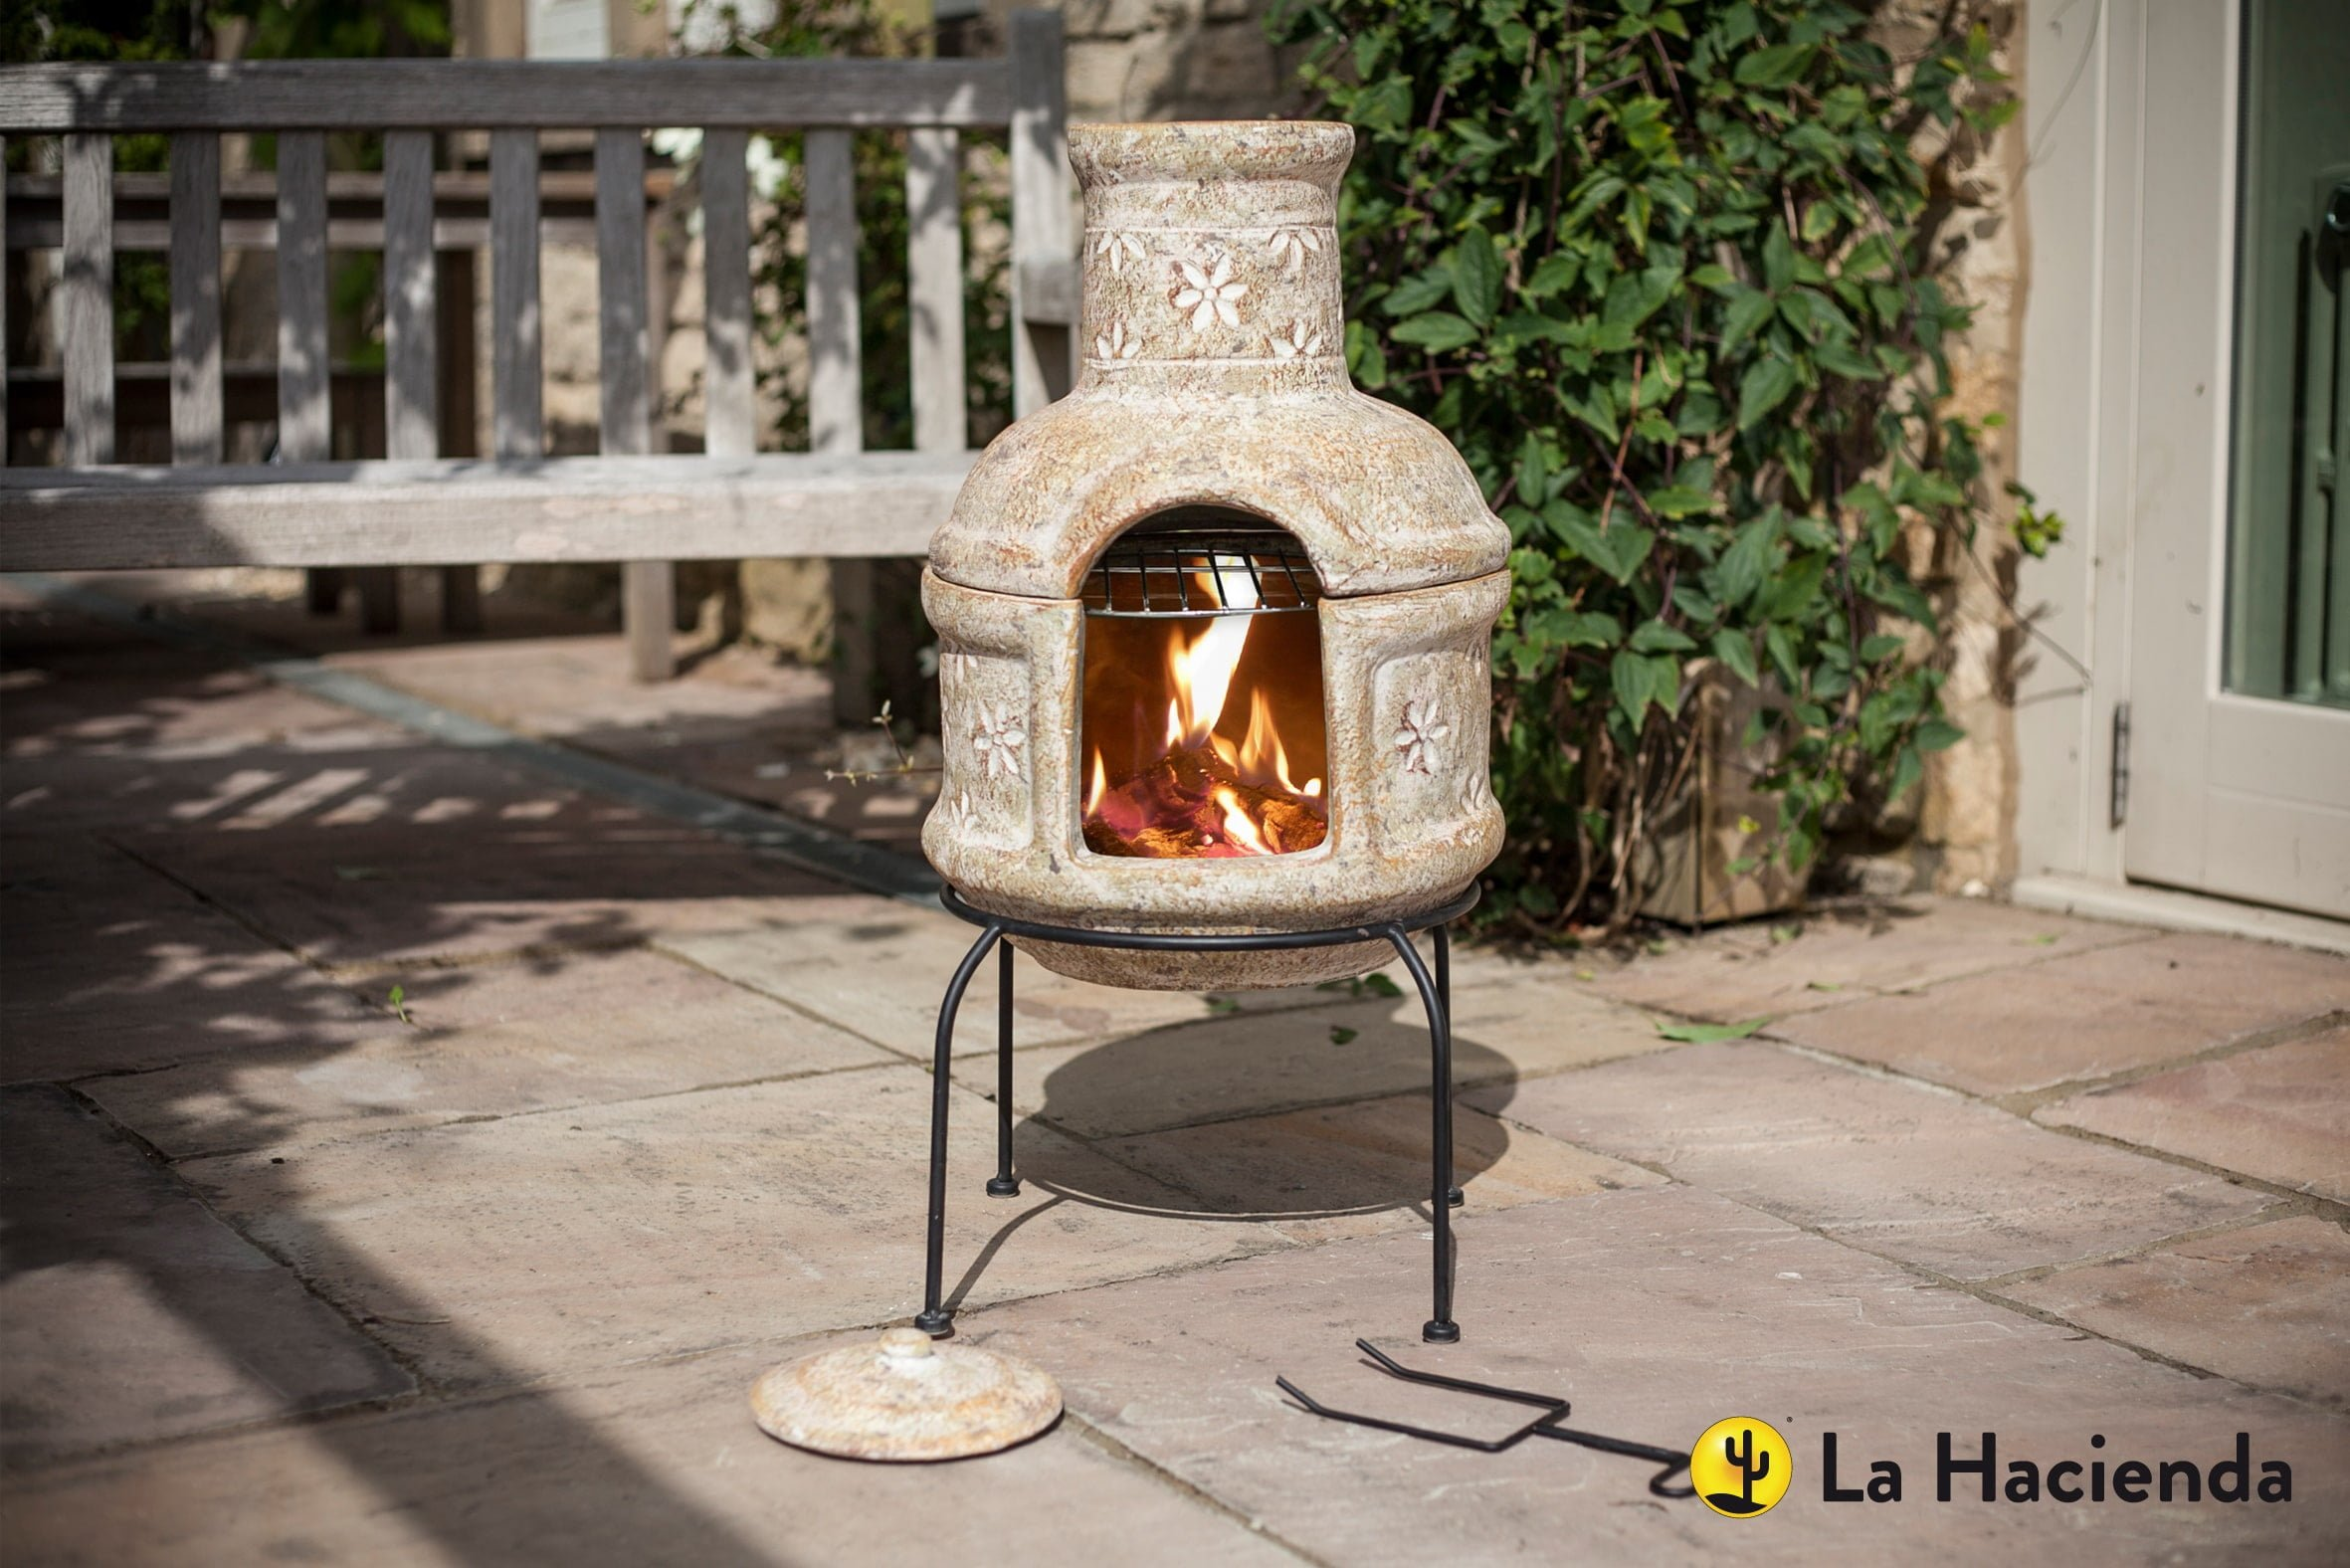 Star Flower Chimnea with Grill